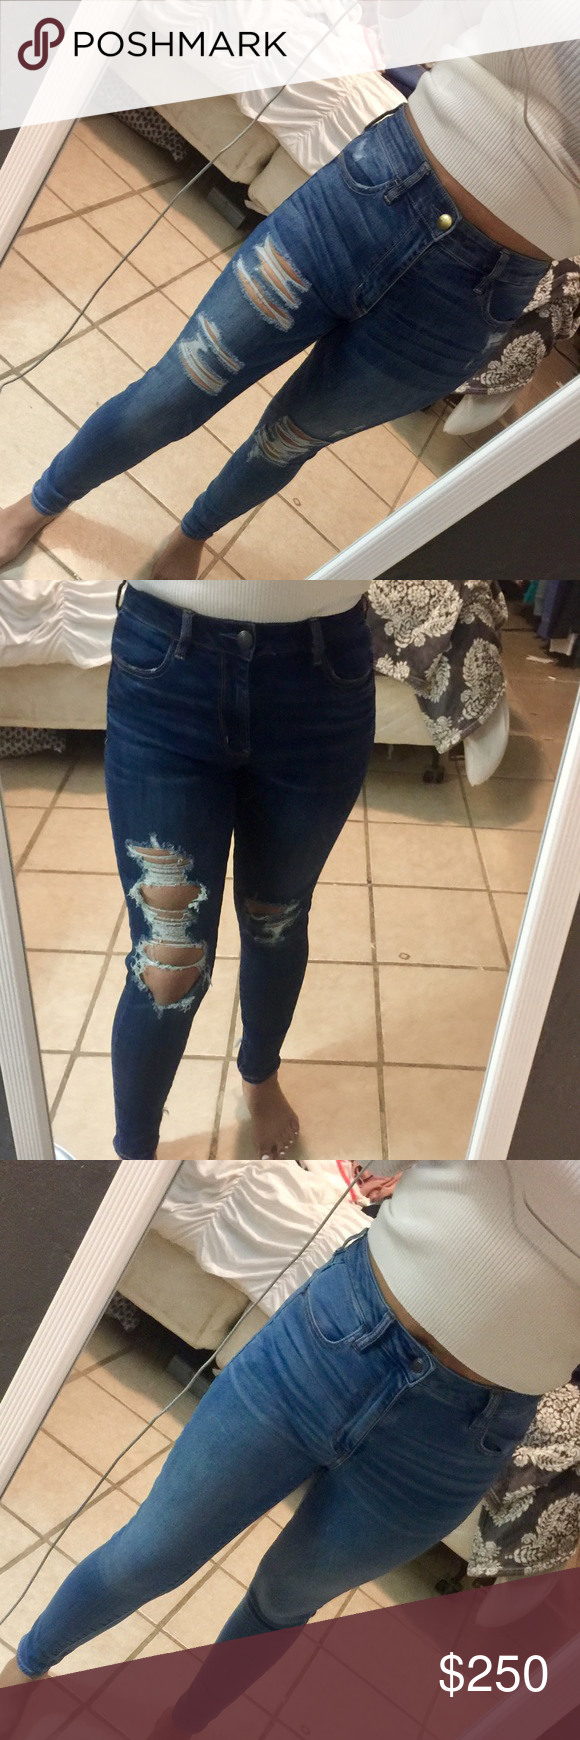 ✨AMERICAN EAGLE JEANS BUNDLE✨ All are